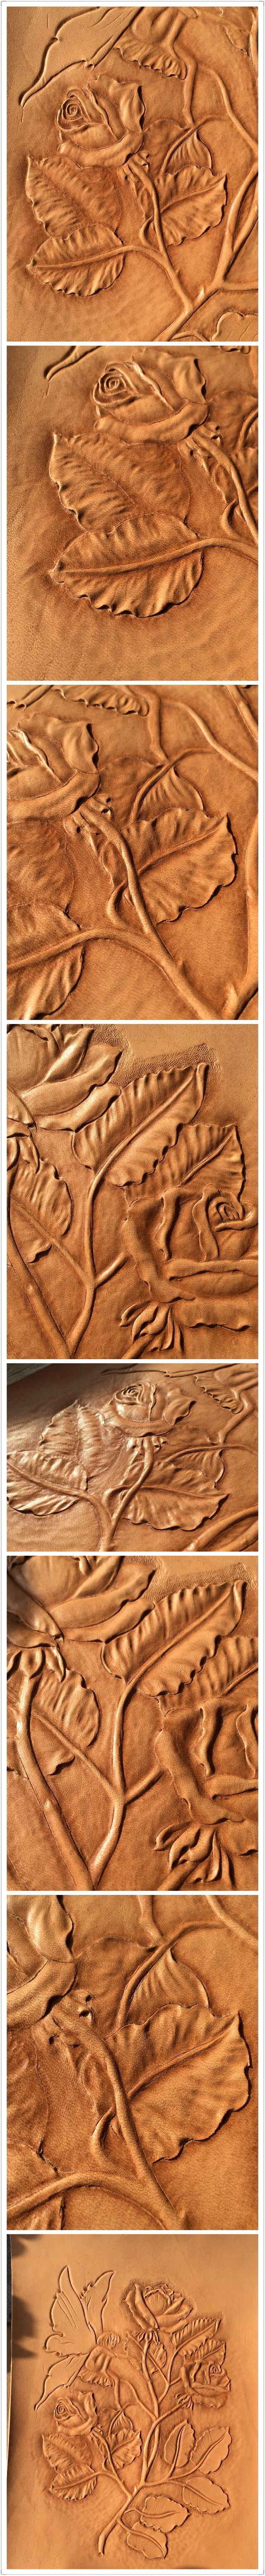 Rose garden #leather carving#leather#carving